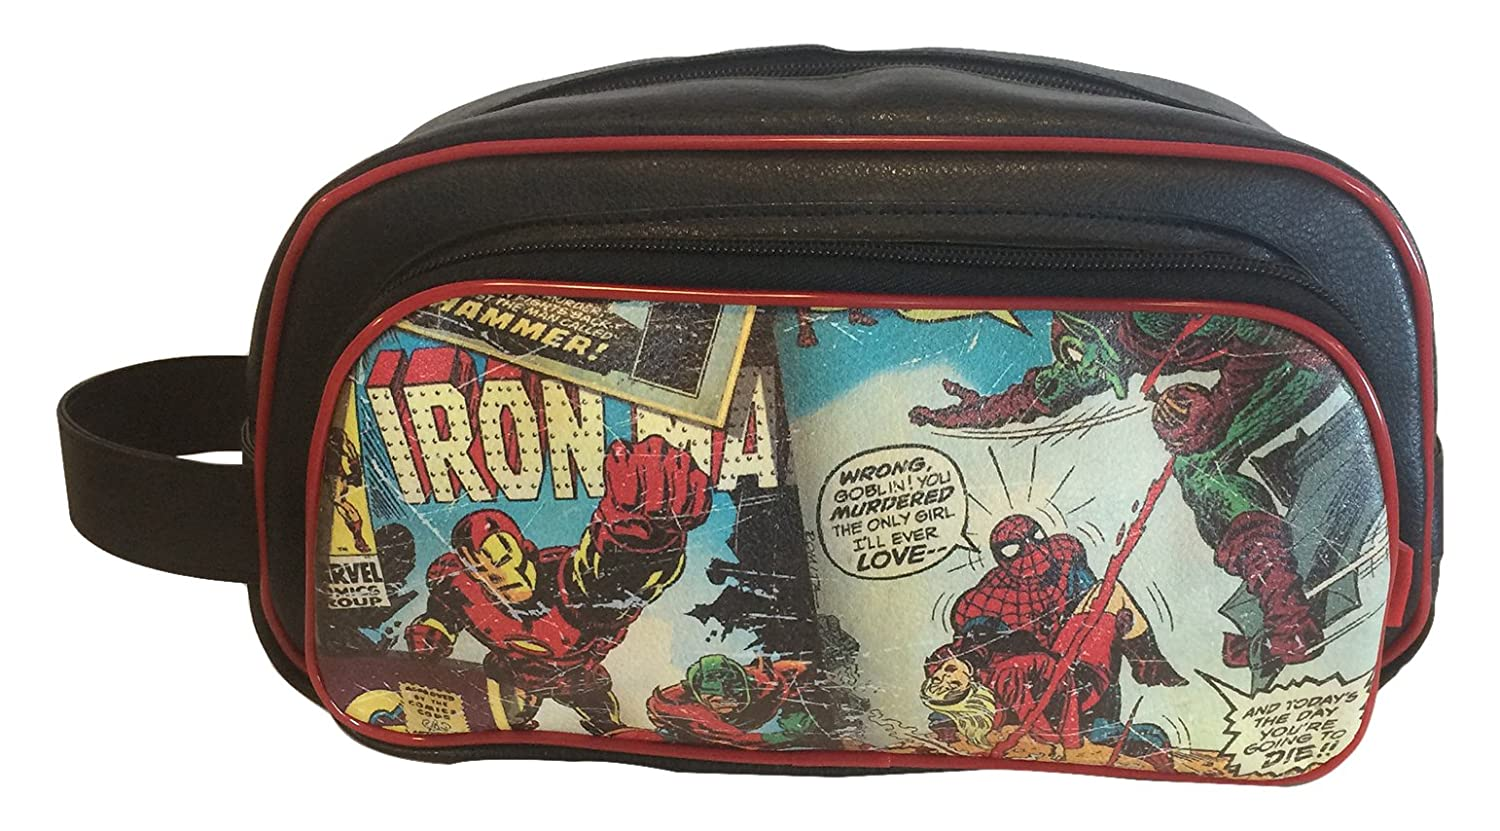 d1697752464b BB Designs, Marvel Retro Comics, Toiletry Bag, Makeup Toiletries Bag